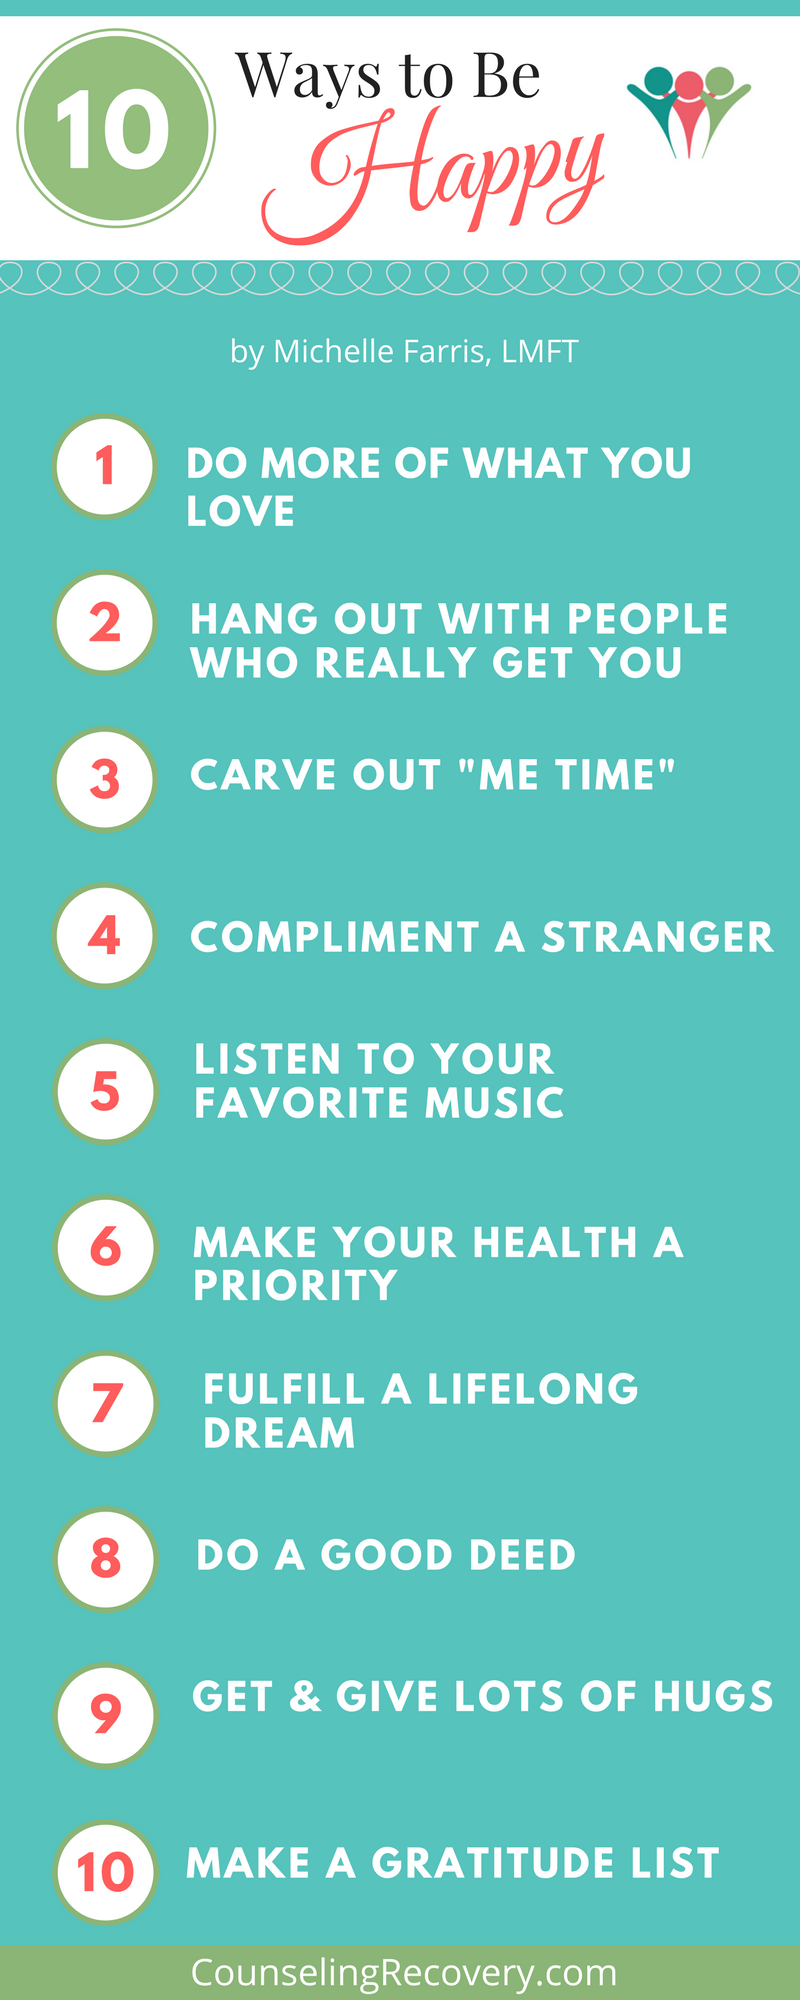 Tips on how to be happy